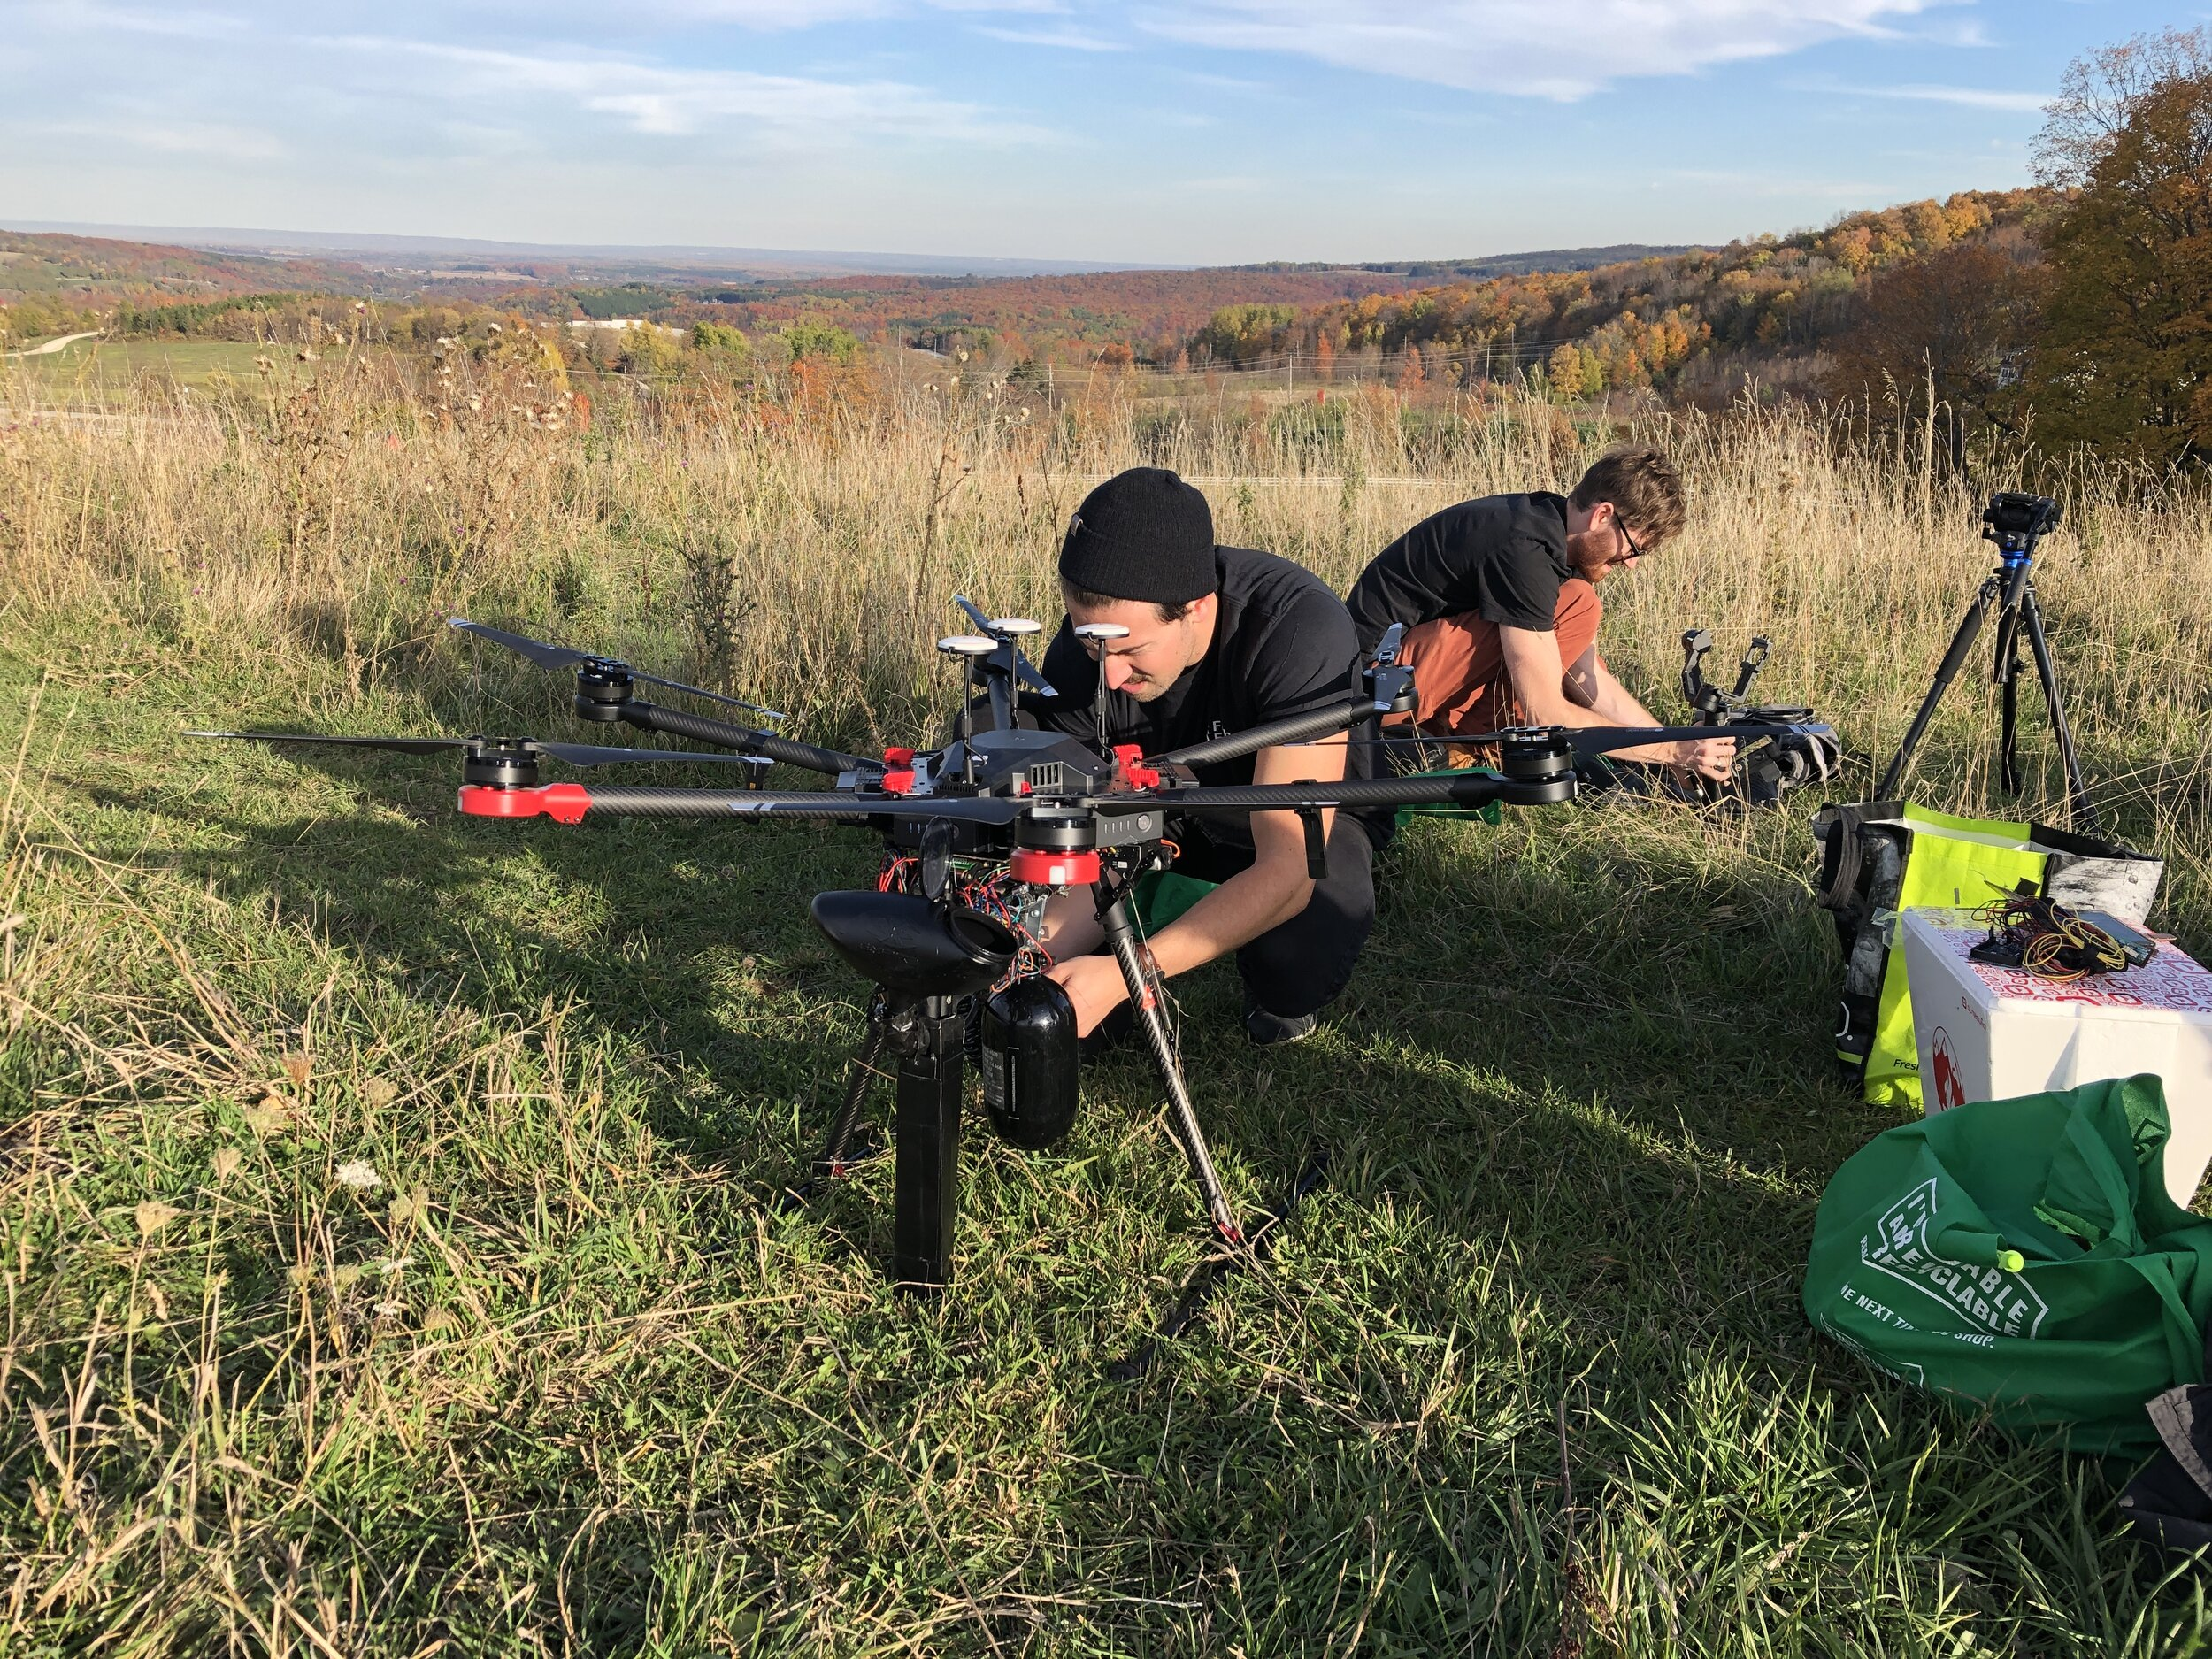 Startup raising funds to plant trees using drone technology